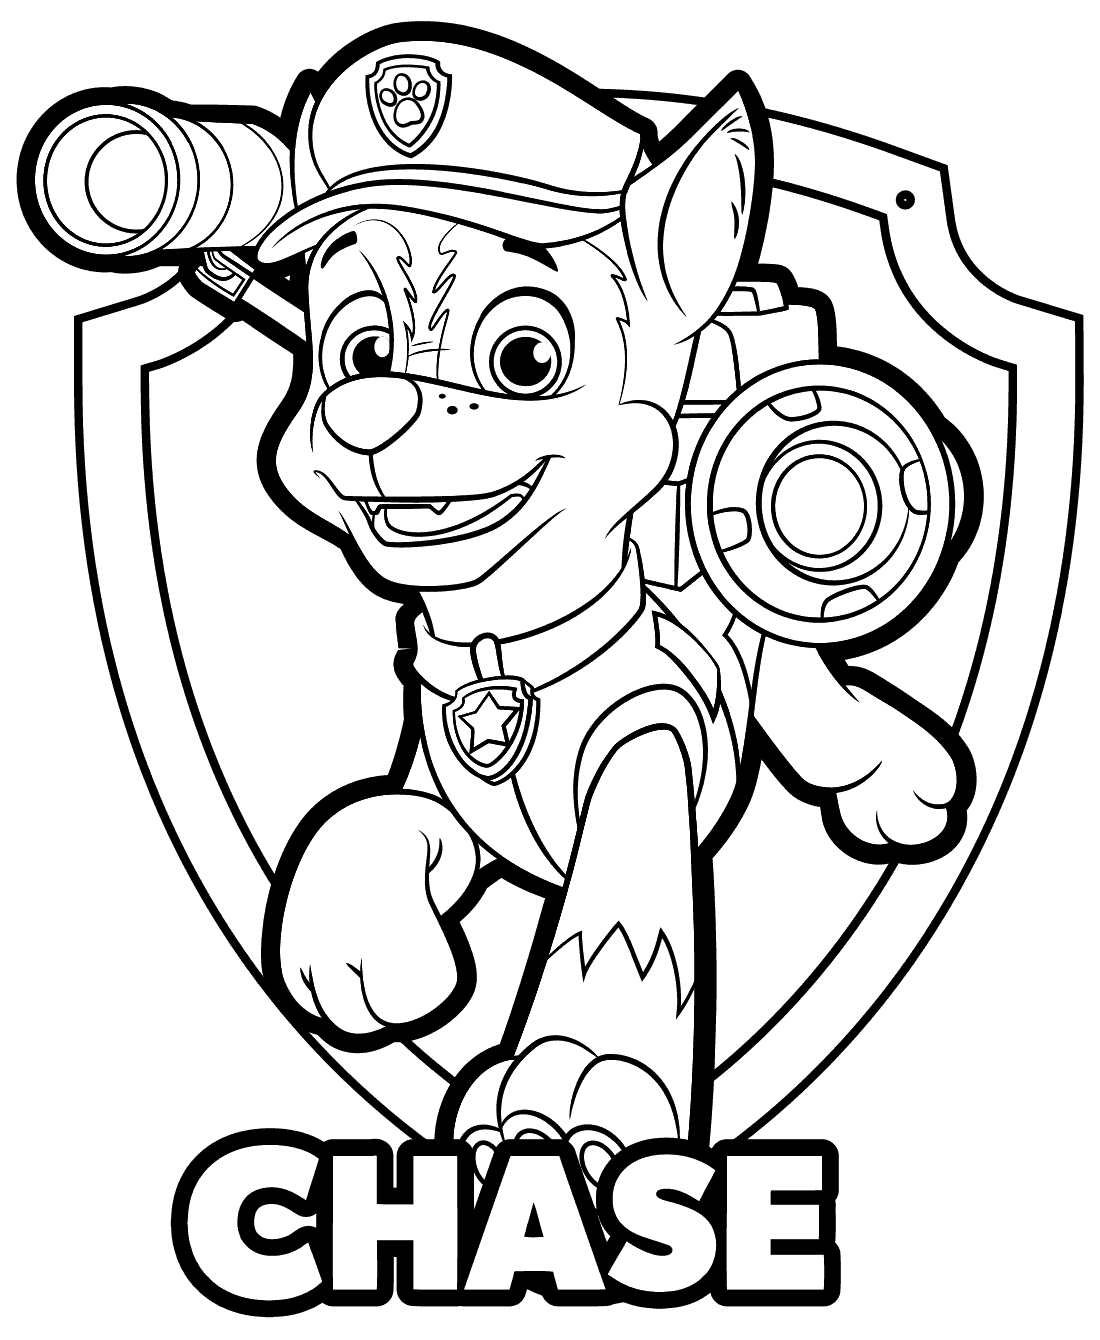 Paw Patrol Chase Drawing At Getdrawings Com Free For